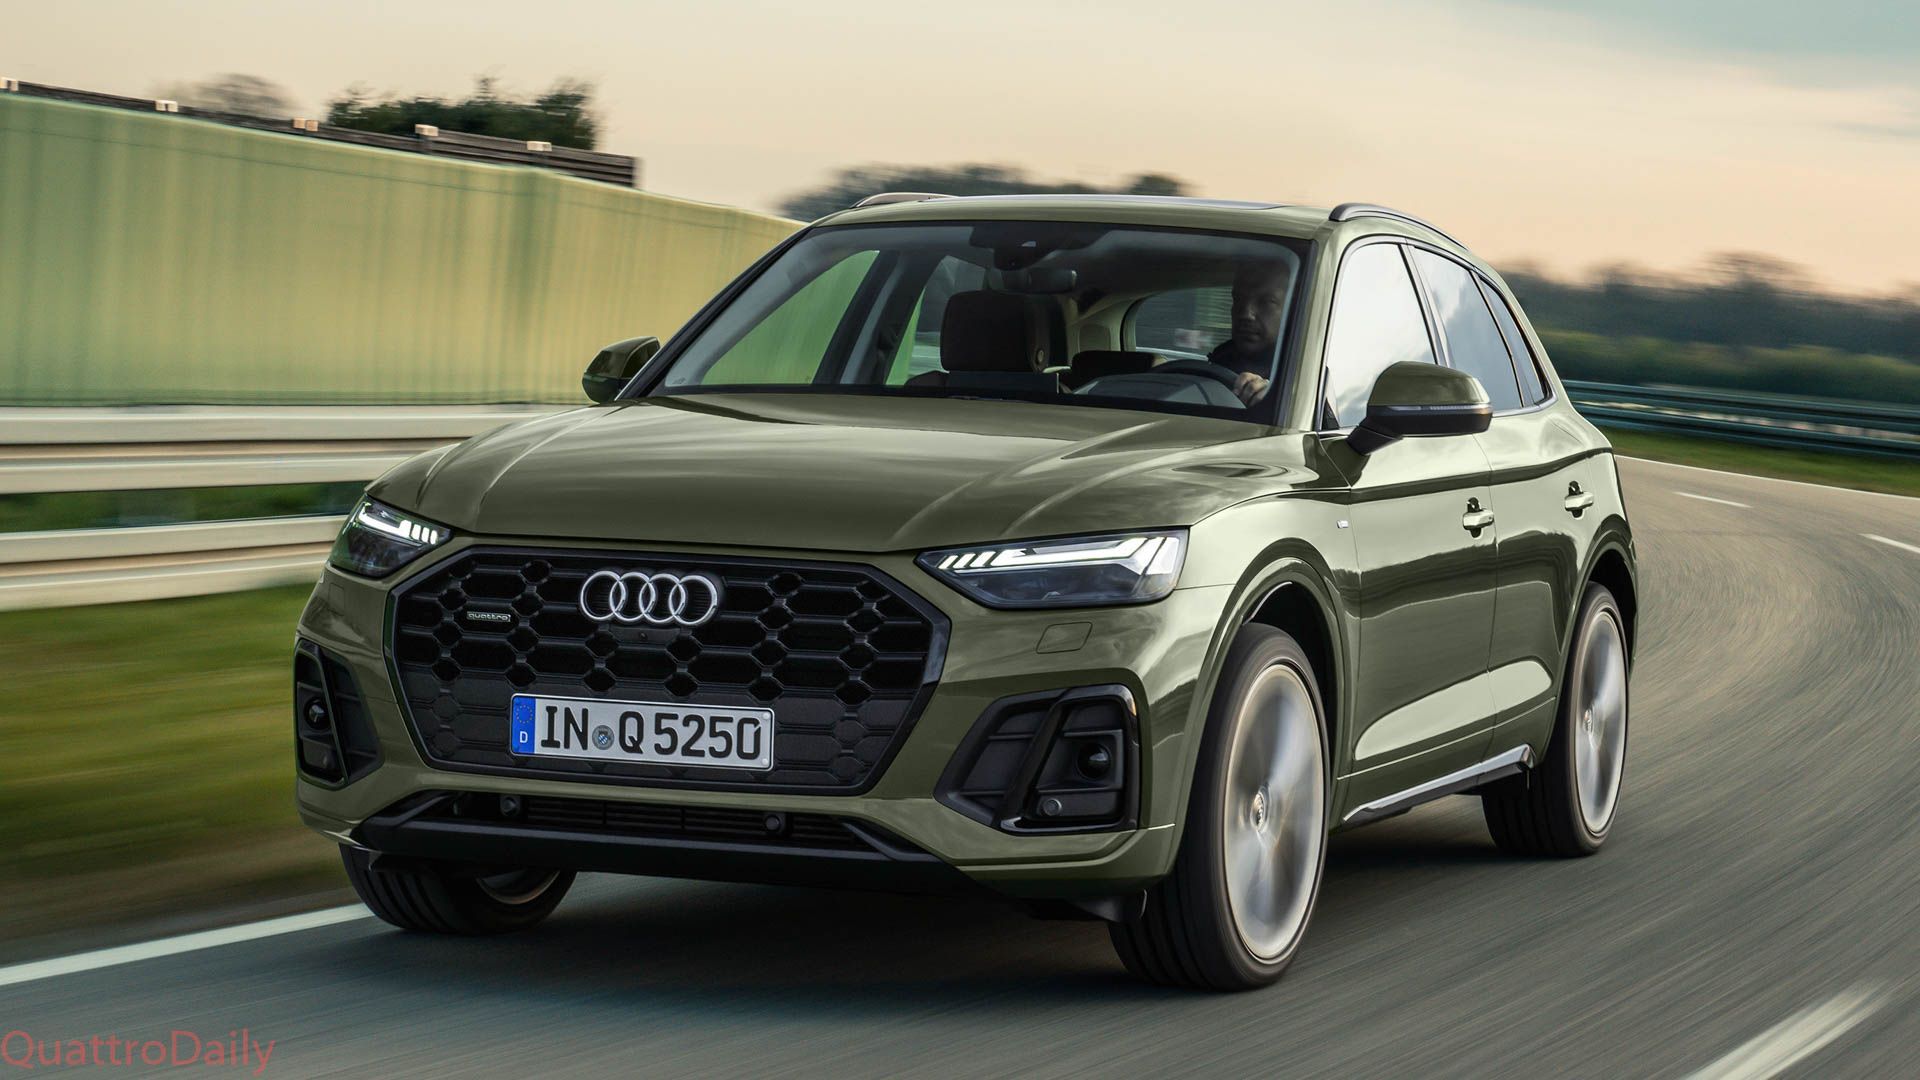 Photo Comparison Audi Q5 Facelift Versus Bmw X3 In 2020 Bmw X3 Audi Q5 Audi